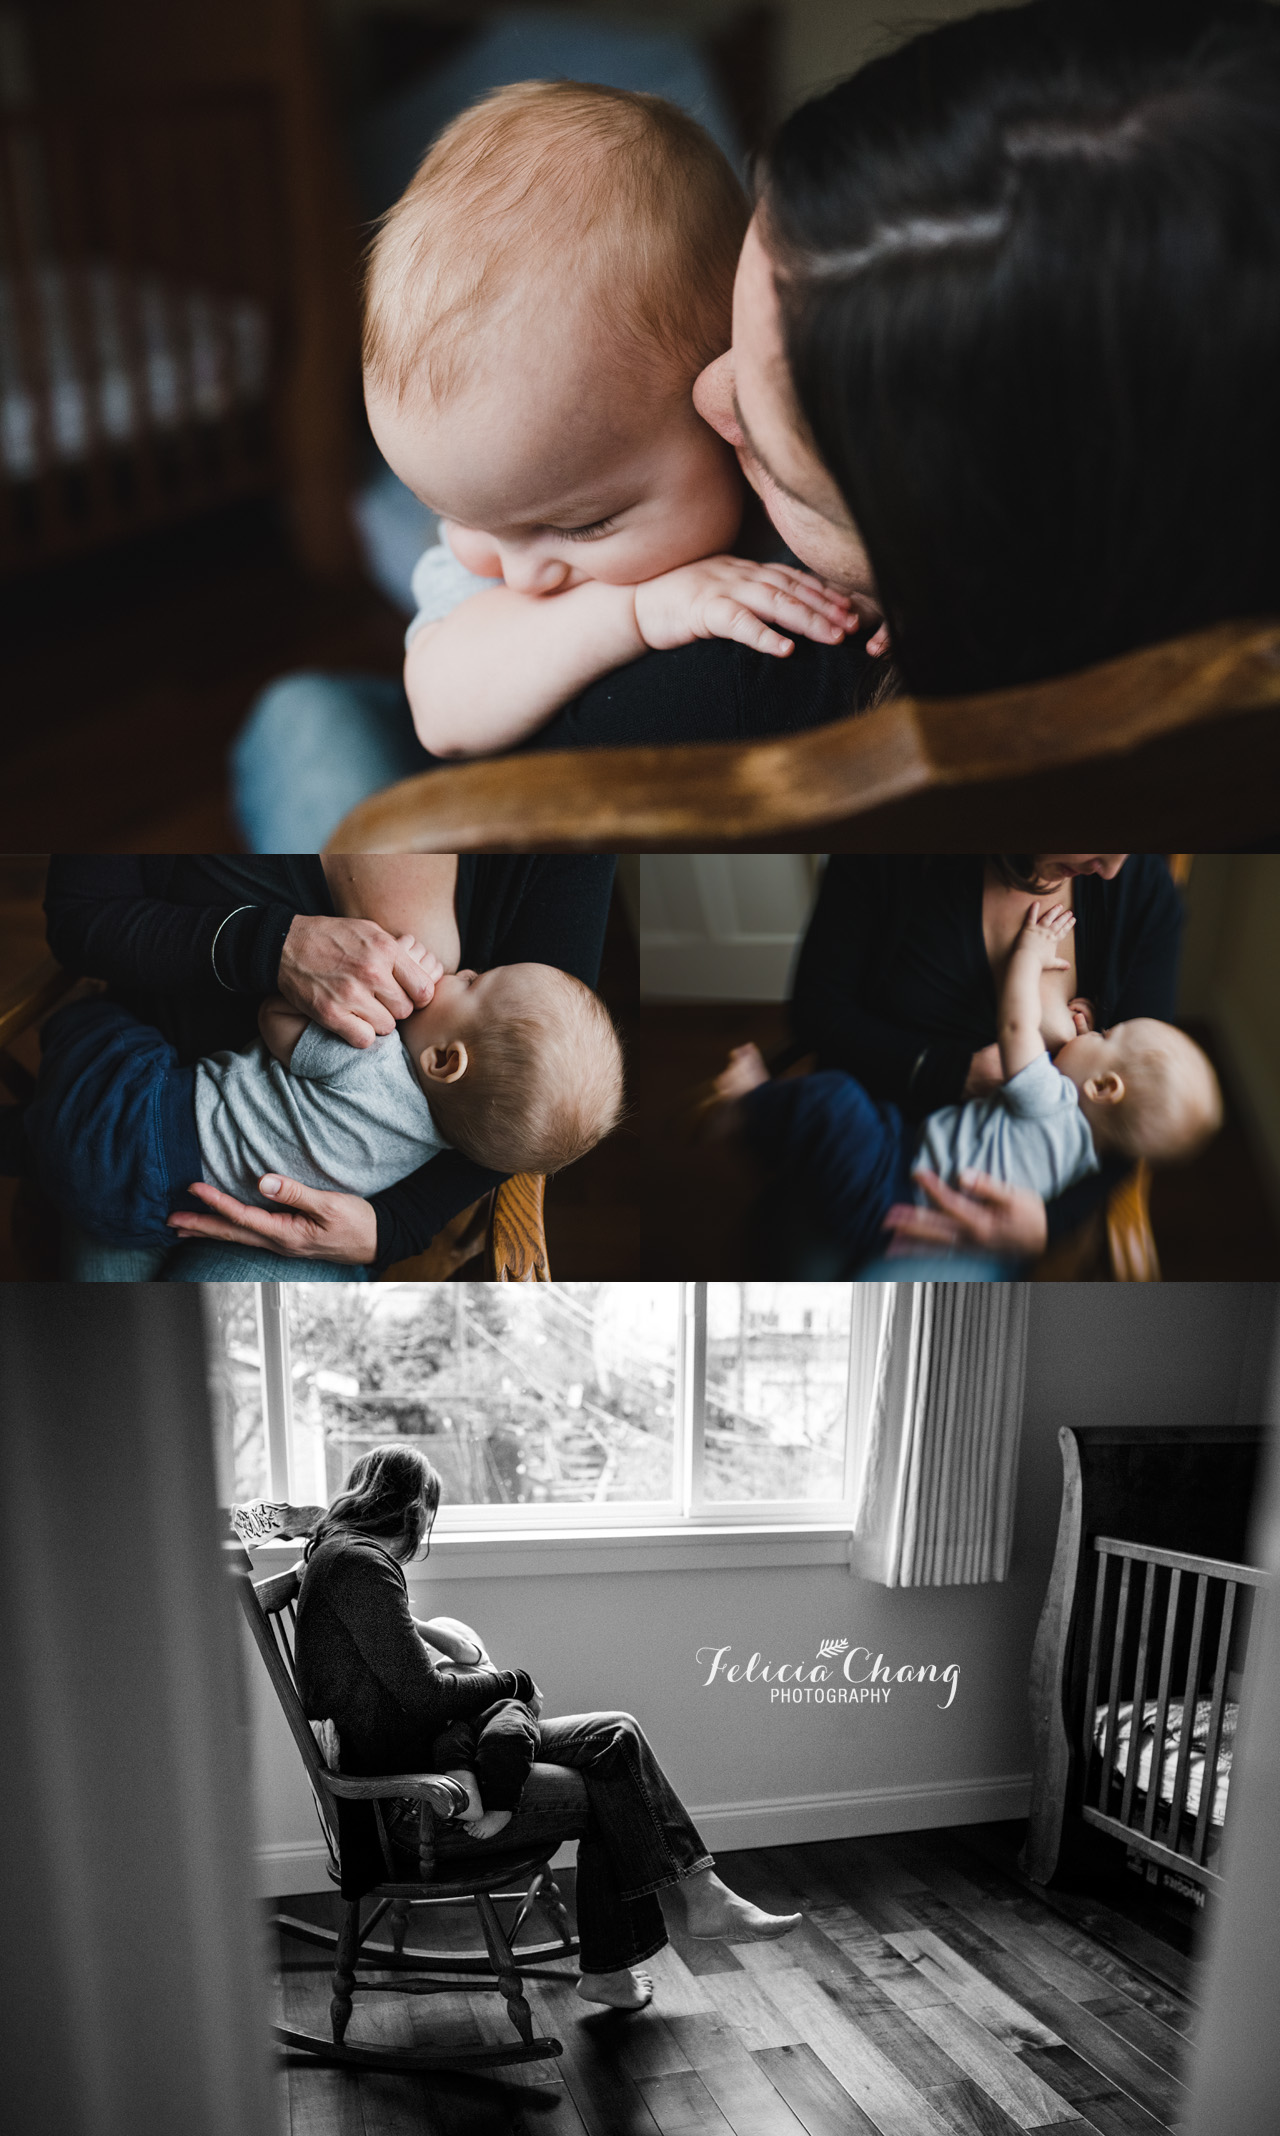 vancouver breastfeeding photos | Felicia Chang Photography